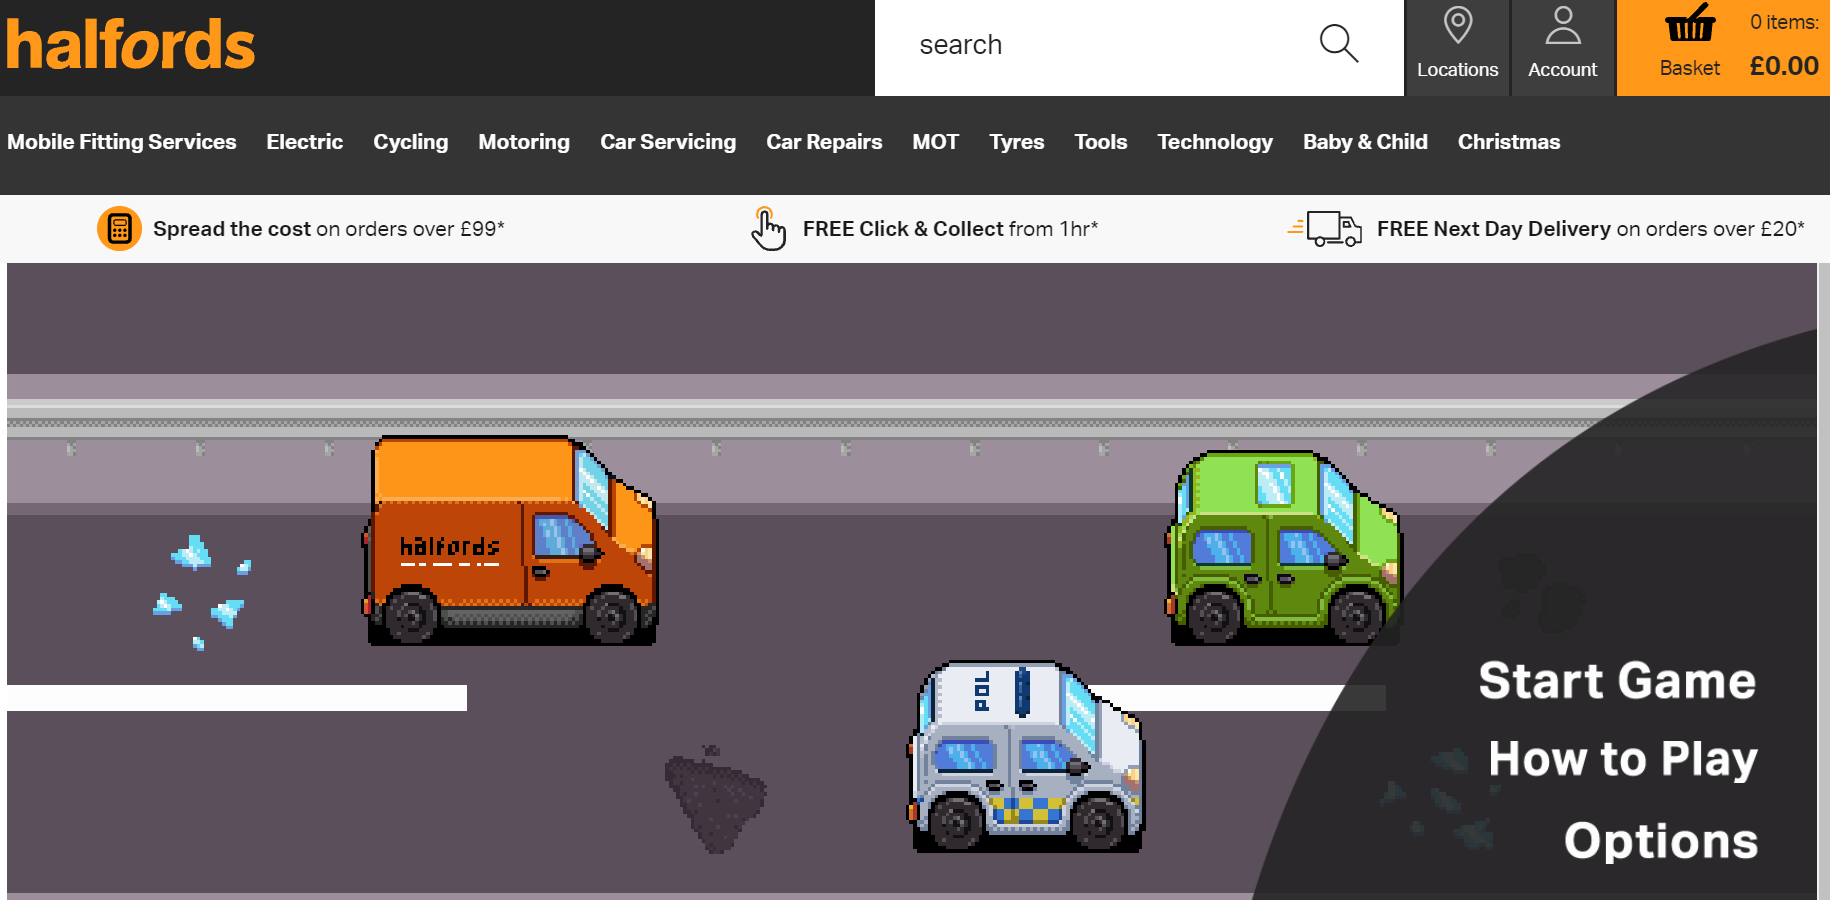 Halfords launches video game during Tyre Safety Month